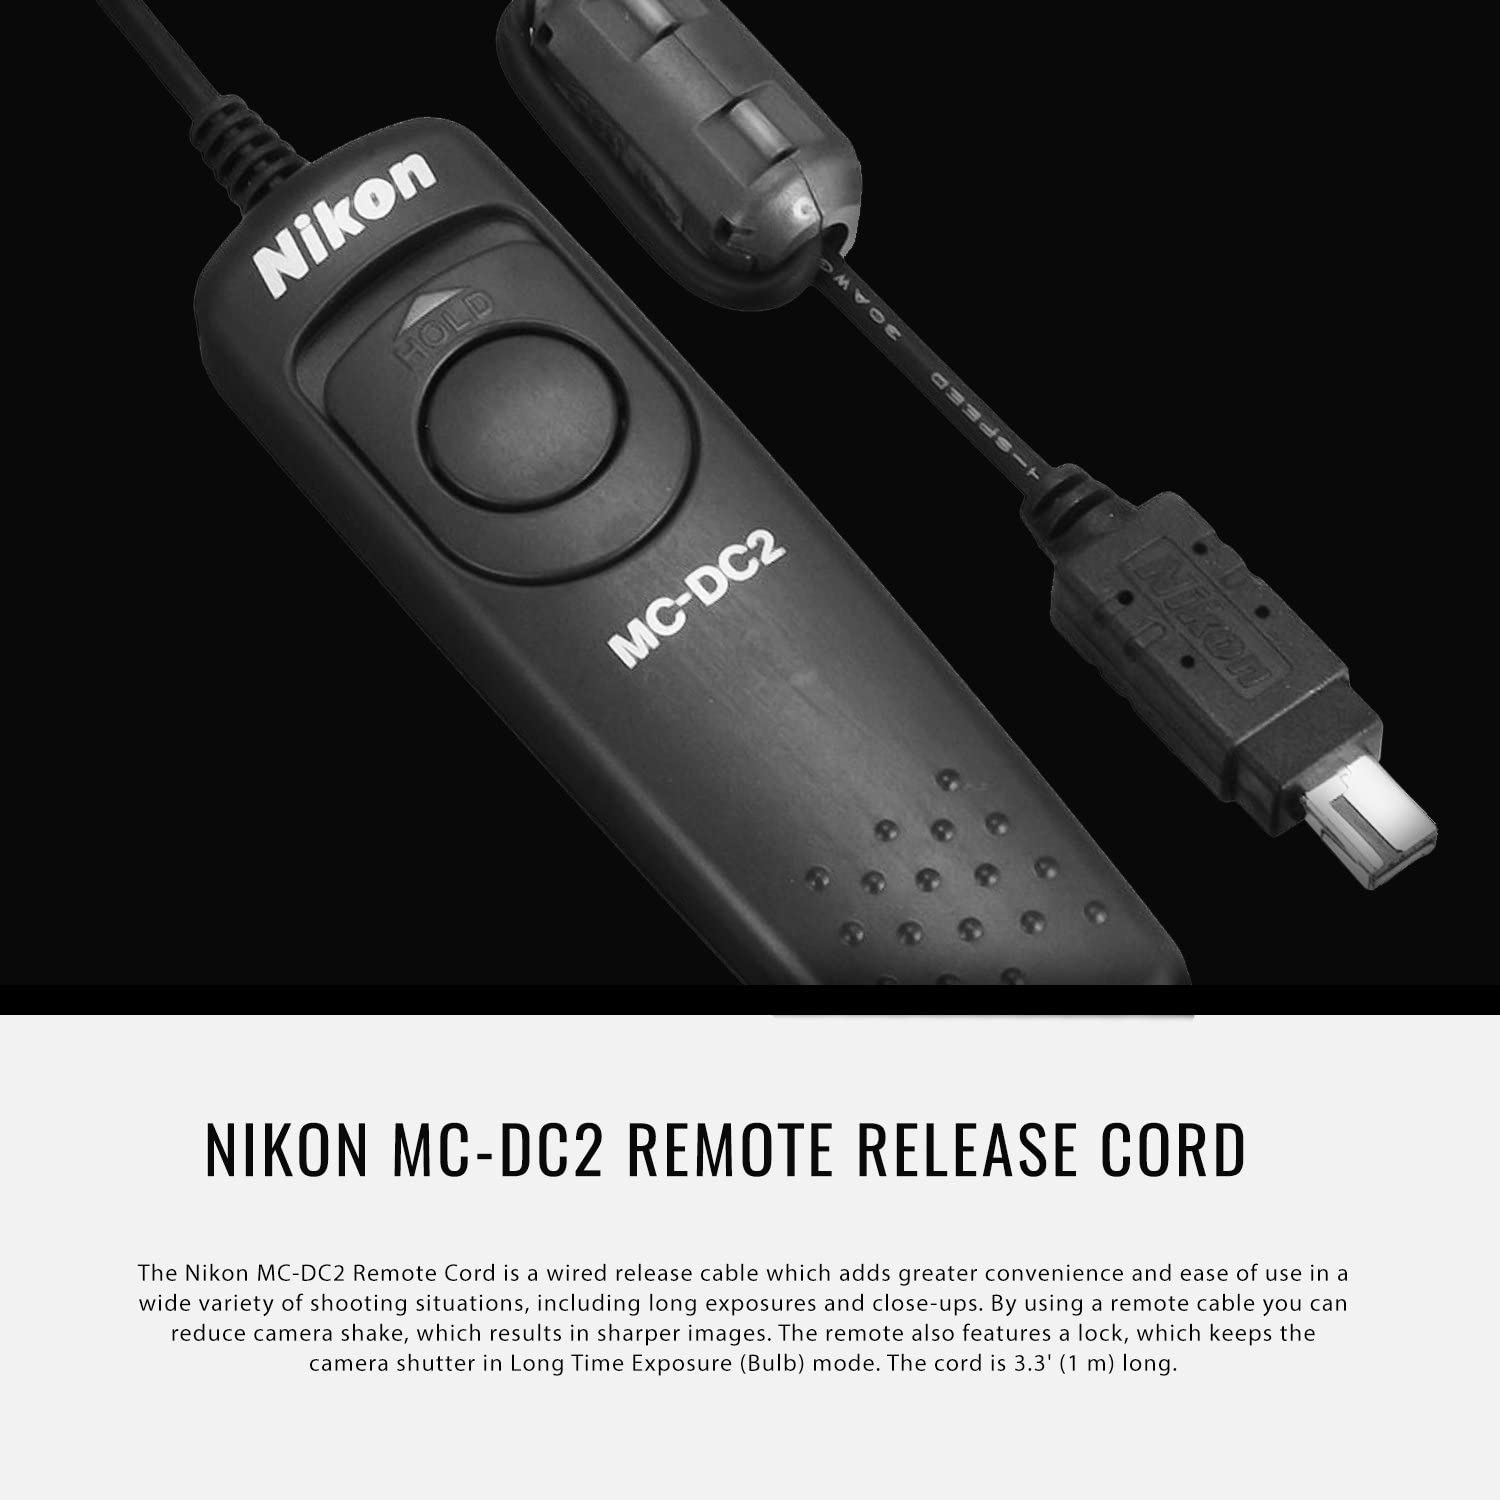 Nikon MC-DC2 Remote Release Cord with Xpix Camera Strap and Deluxe Camera Lens Cleaning Kit